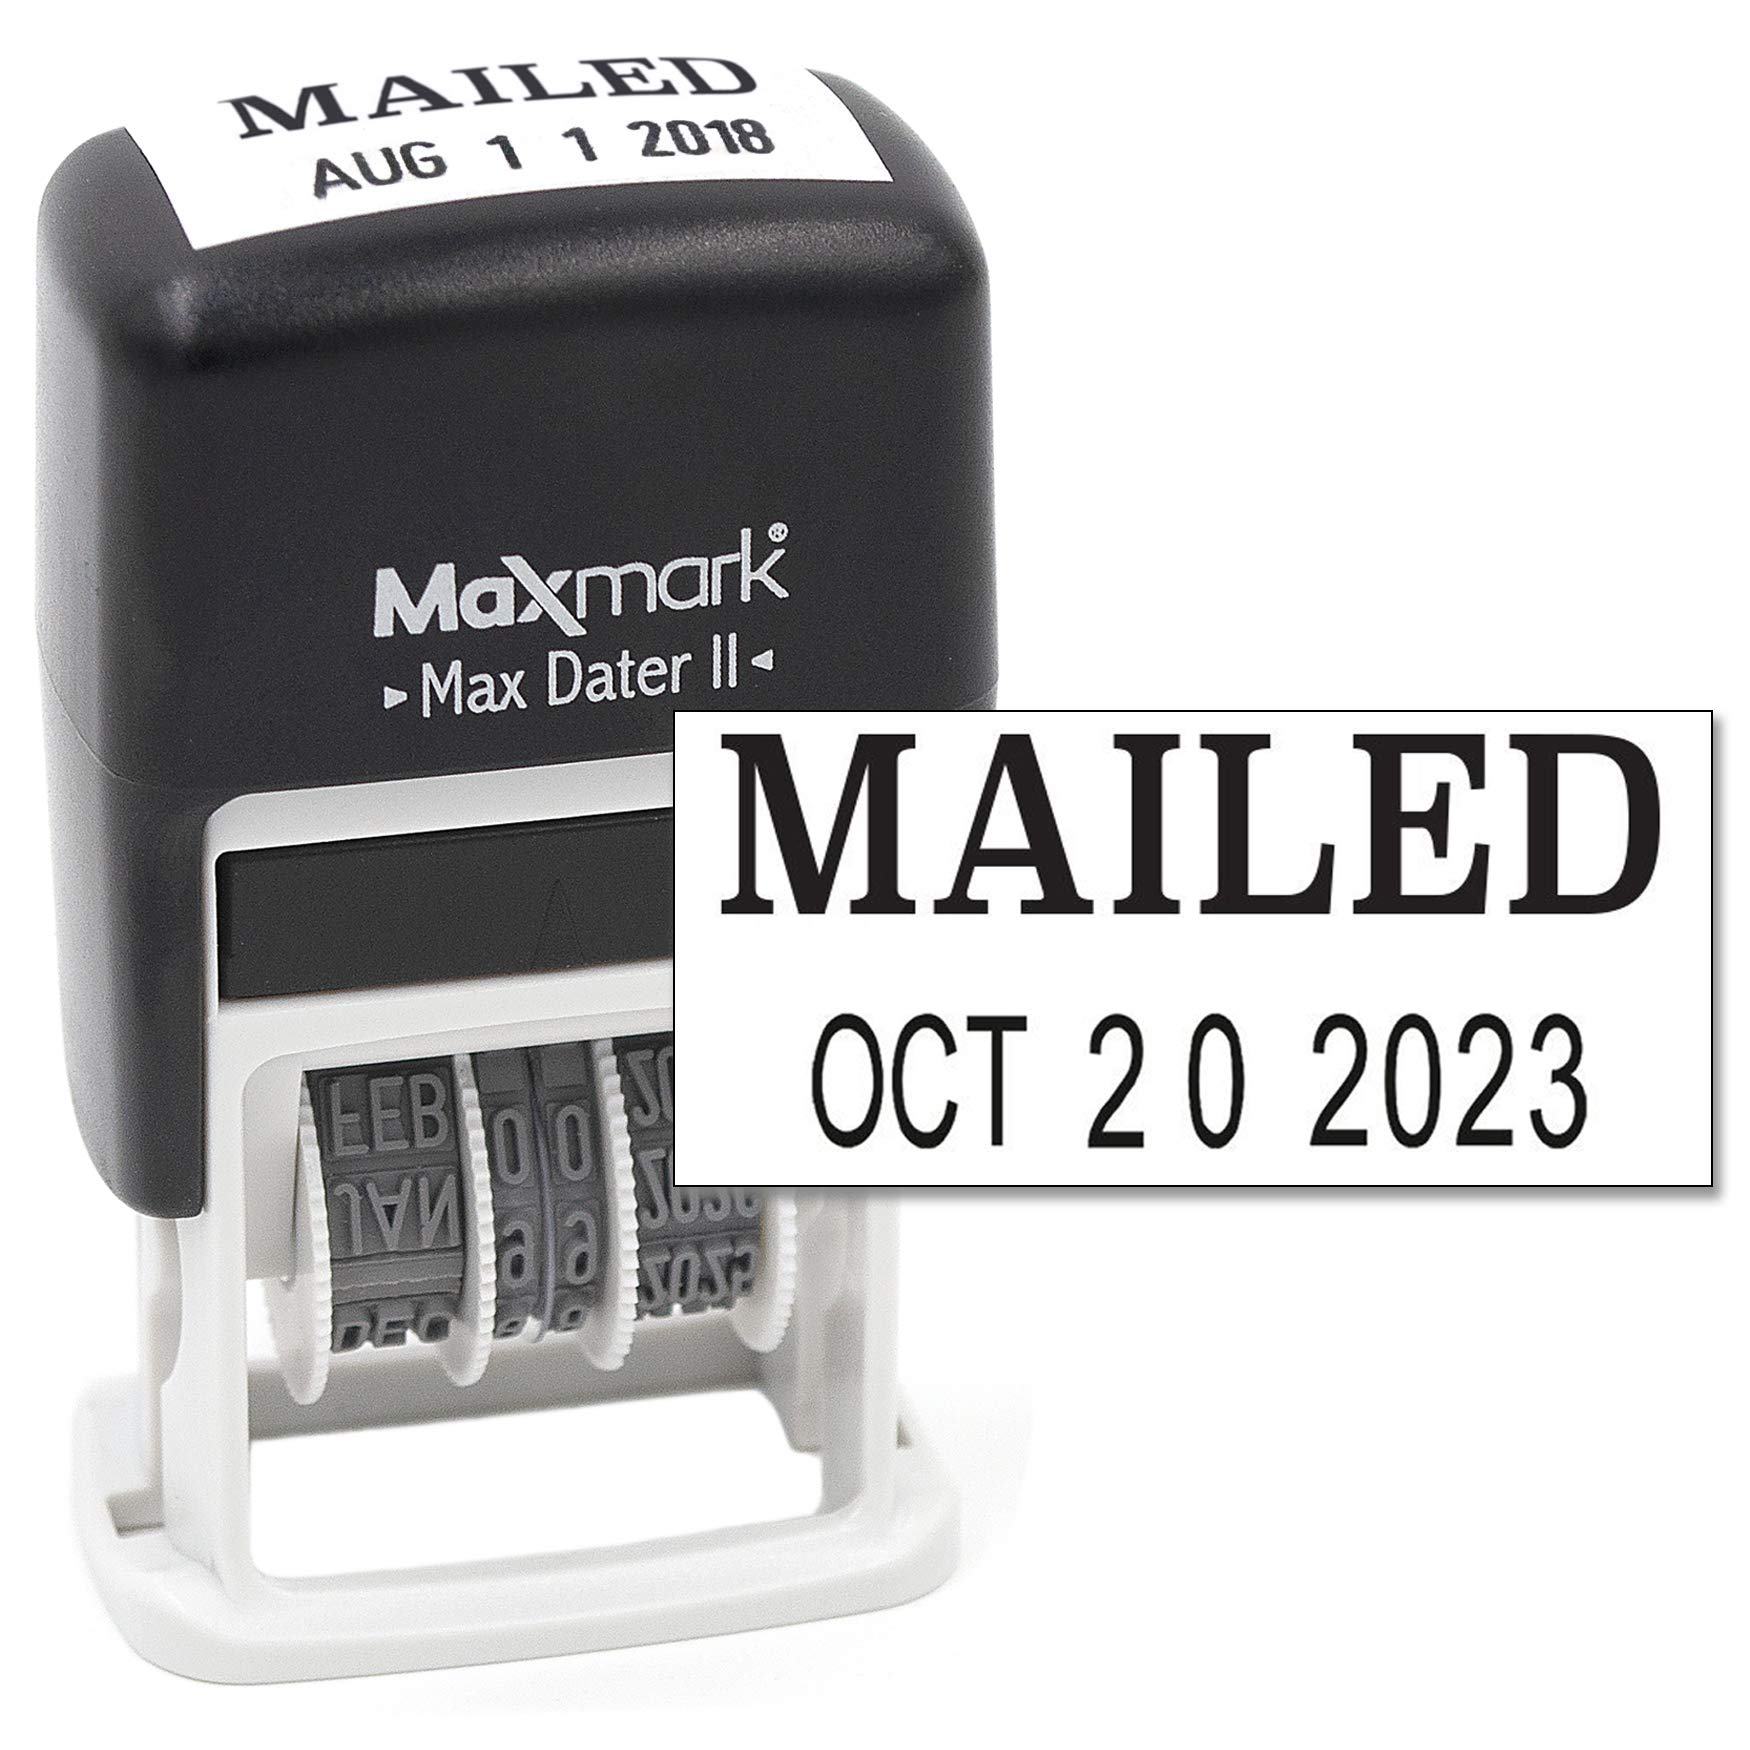 MaxMark Self-Inking Rubber Date Office Stamp with MAILED Phrase & Date - BLACK INK (Max Dater II), 12-Year Band